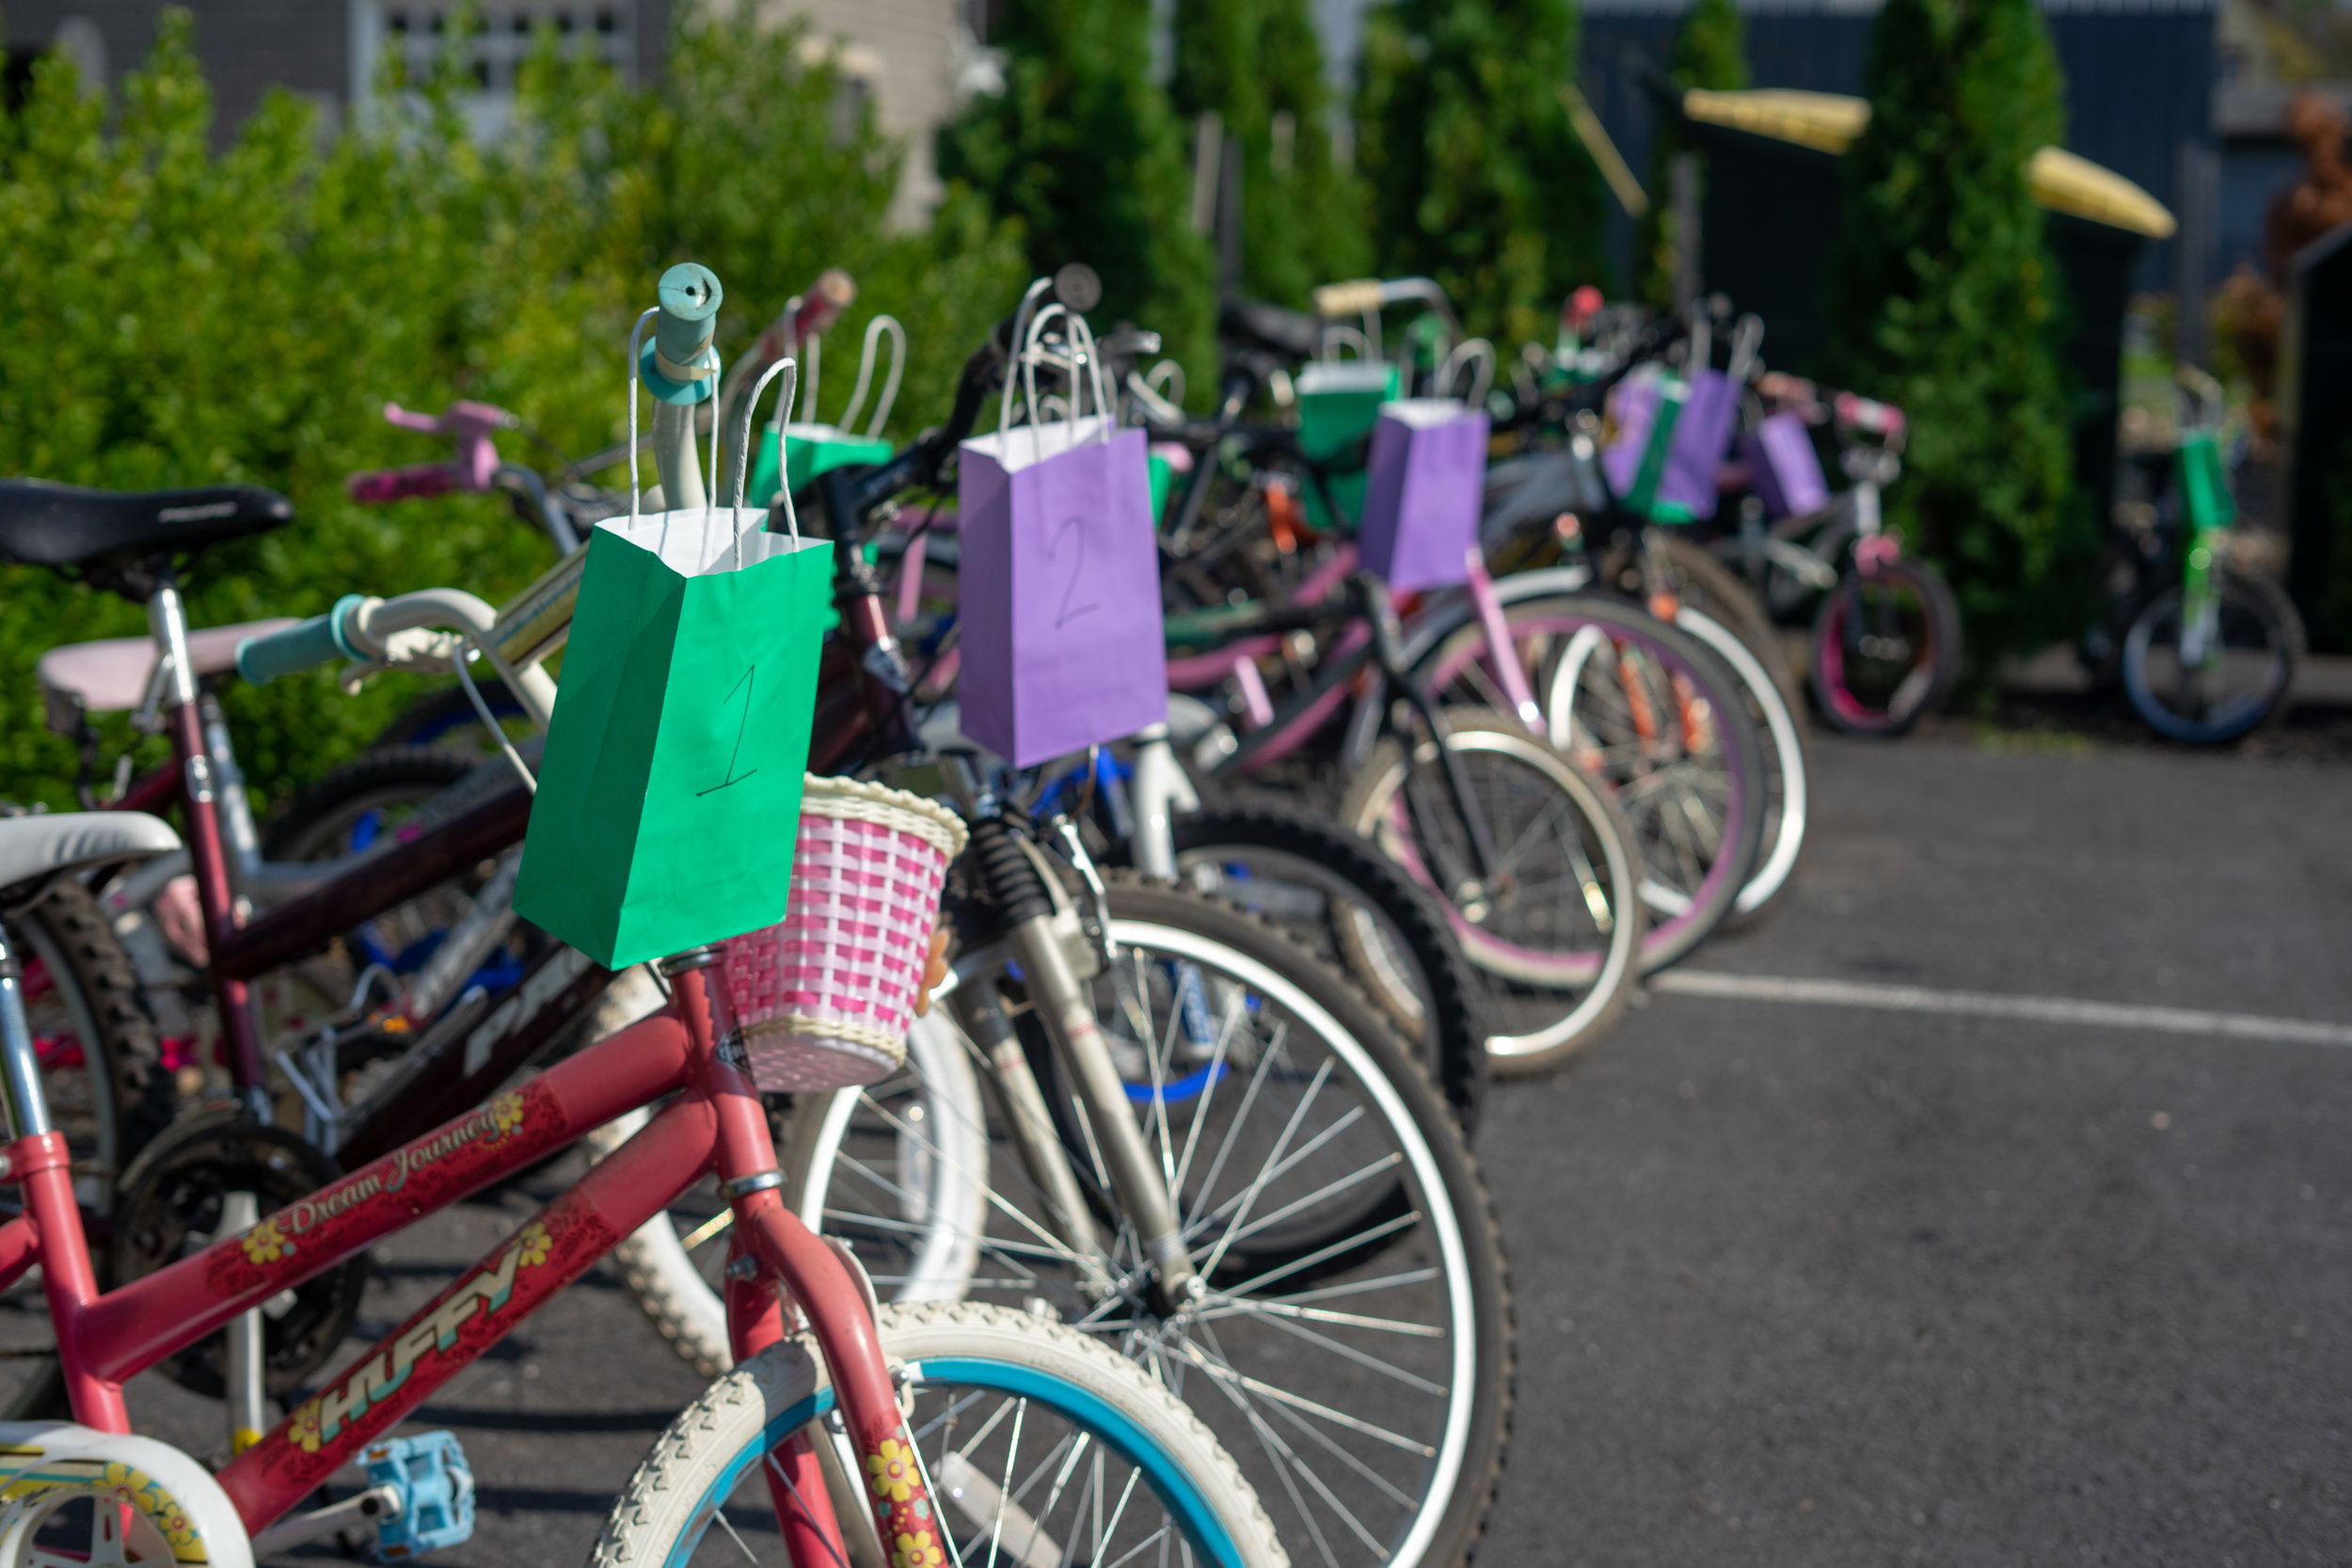 New Hope Ministries raffled 16 bicycles at the Back-to-School Fair on August 2, 2019. Bicycles were donated by generous members of the community. (Photo by Lydia Emrich)